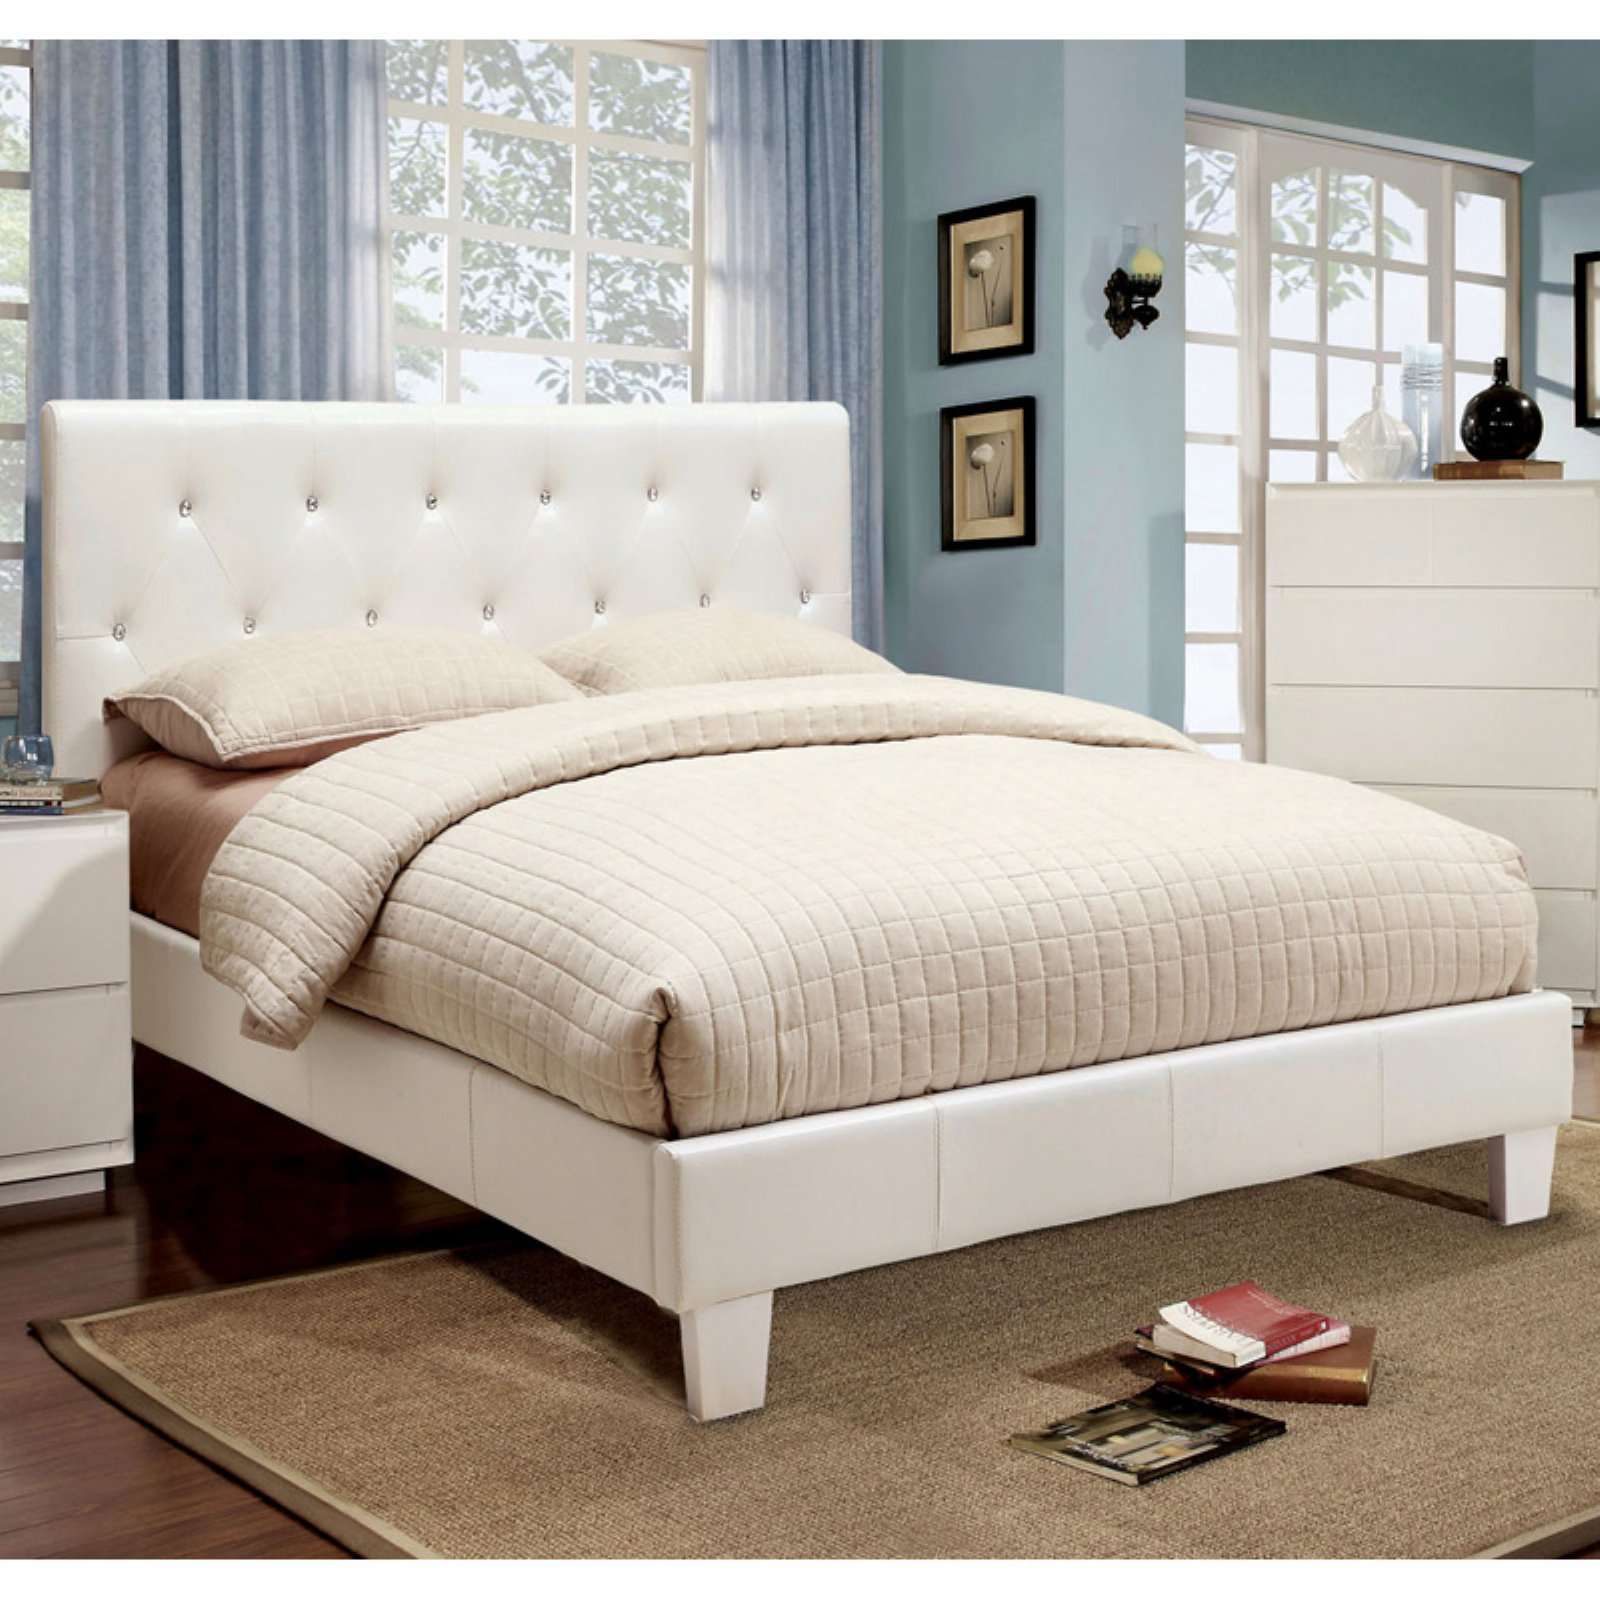 Furniture of America Avara Rhinestone Tufted Platform Bed by Enitial Lab